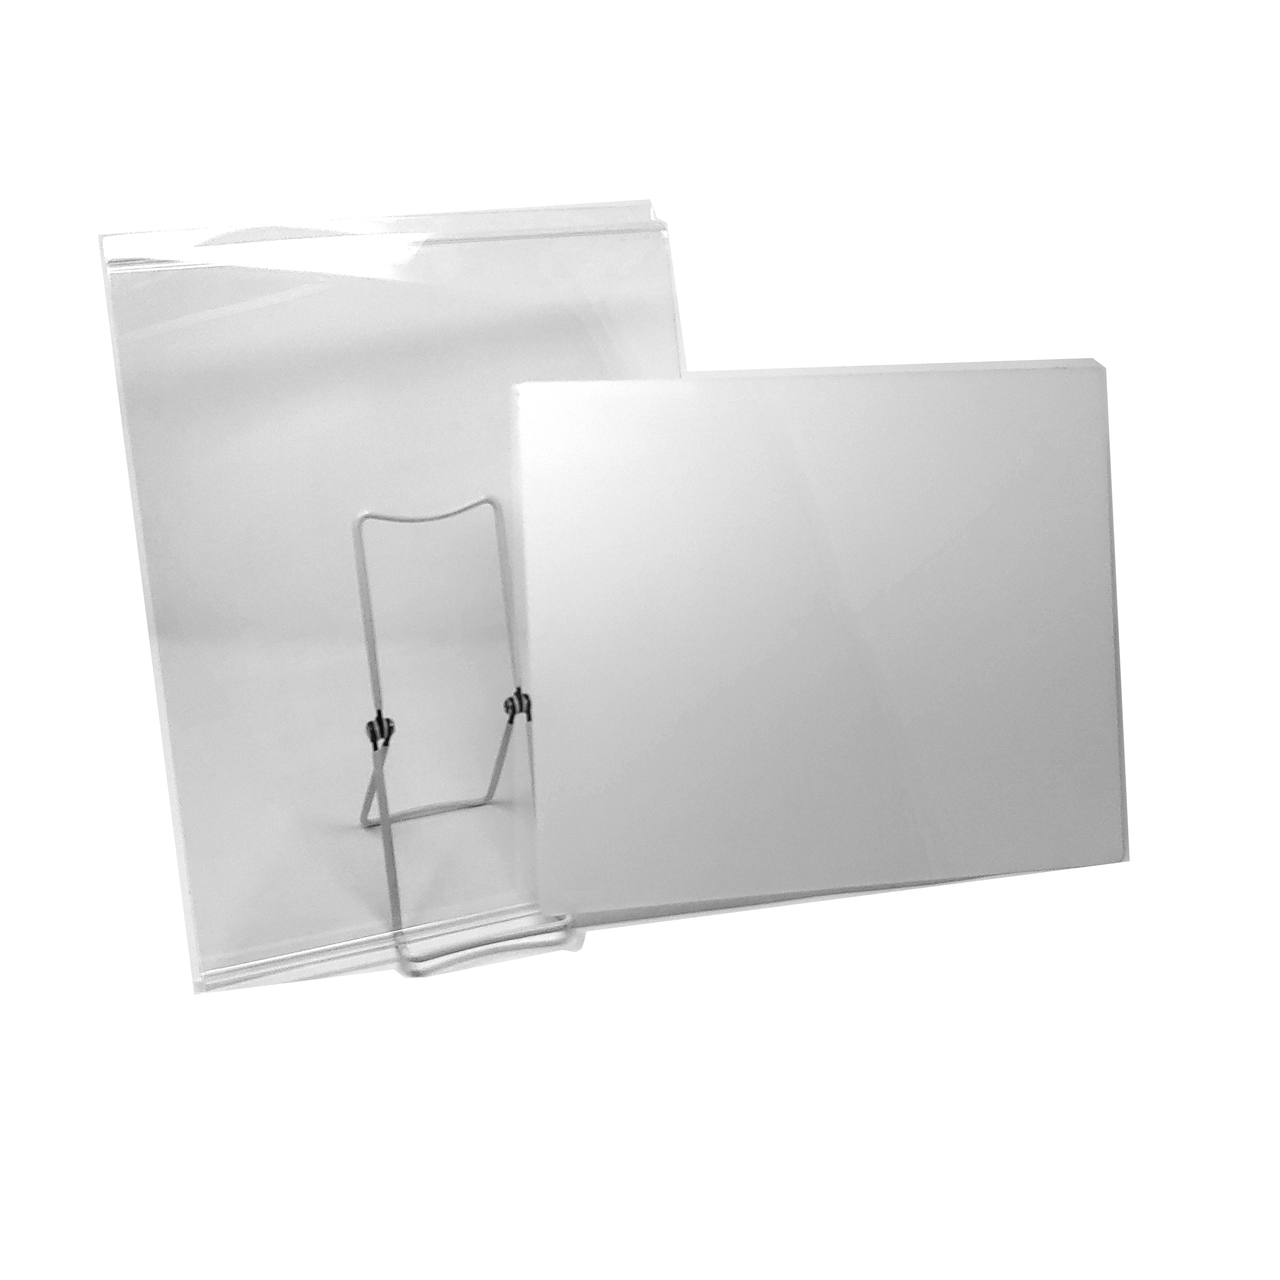 Slatwall Acrylic Graphic T-Shirt Display 5 Pack Retail Tee Frame with Plastic Insert